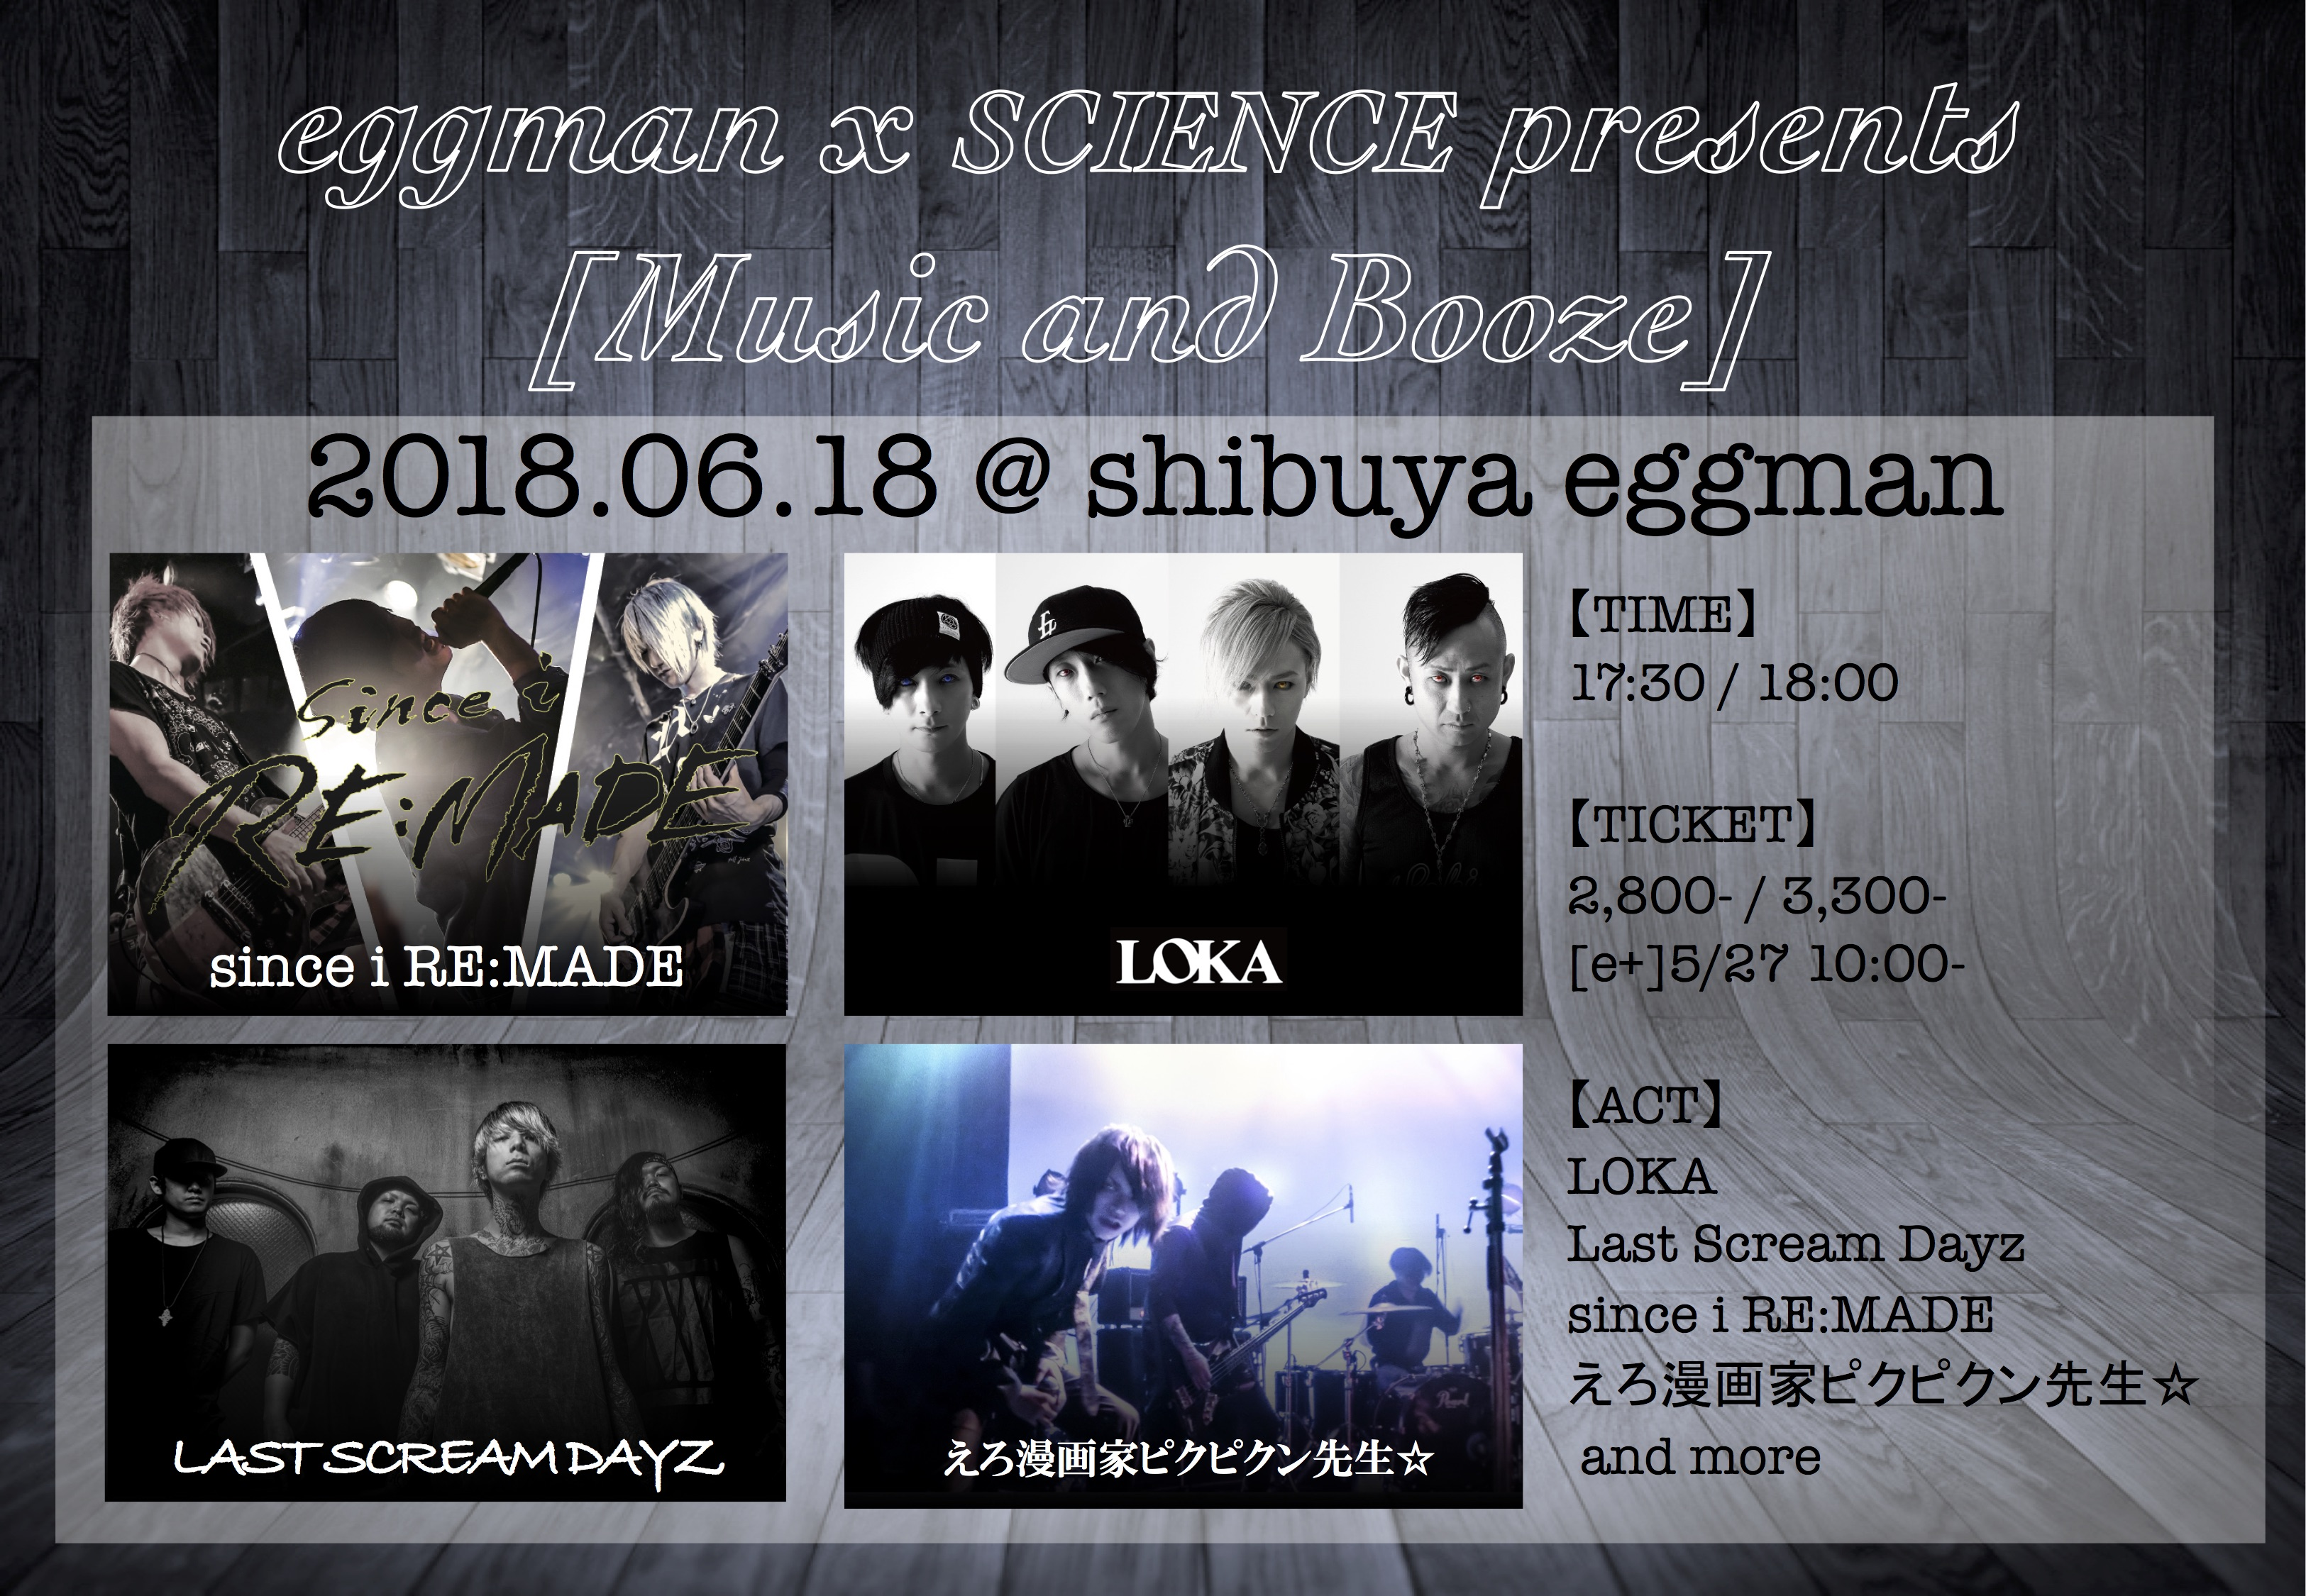 eggman × SCIENCE presents [Music and Booze]